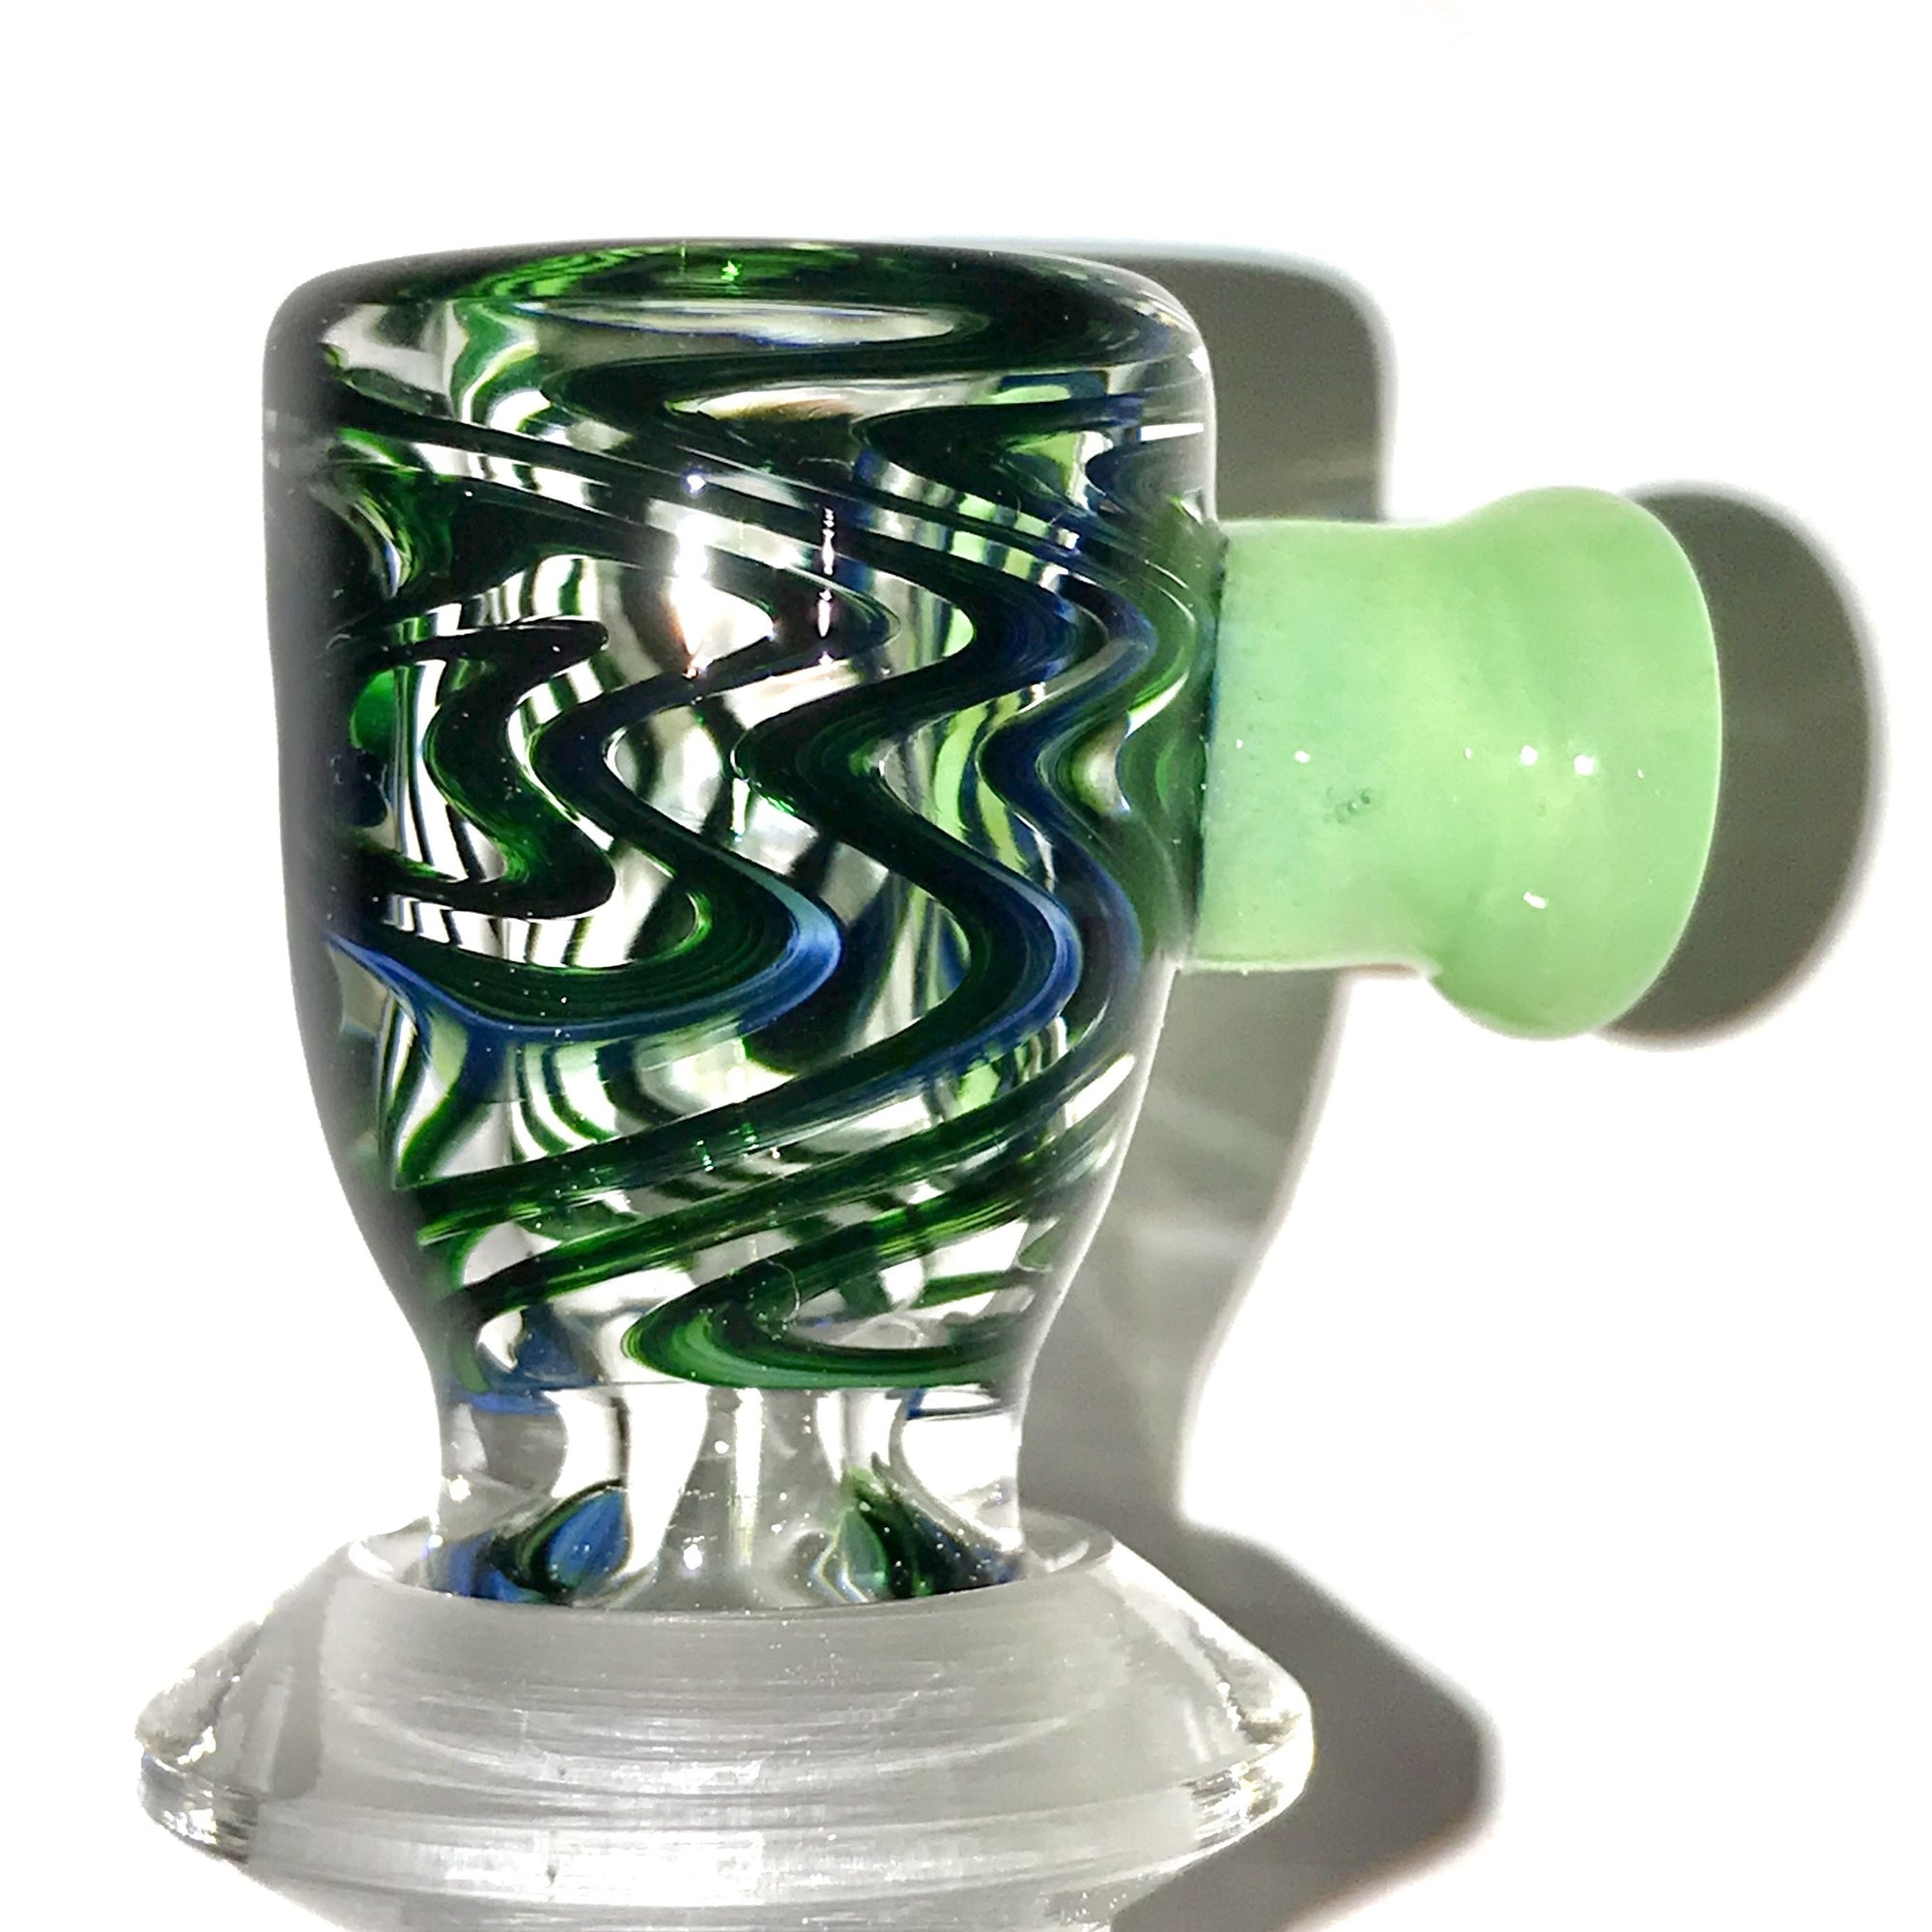 qfactorglass 18/14mm Custom Linework Downstem / Slide Set (Experimental Green) 5 Inches In Length